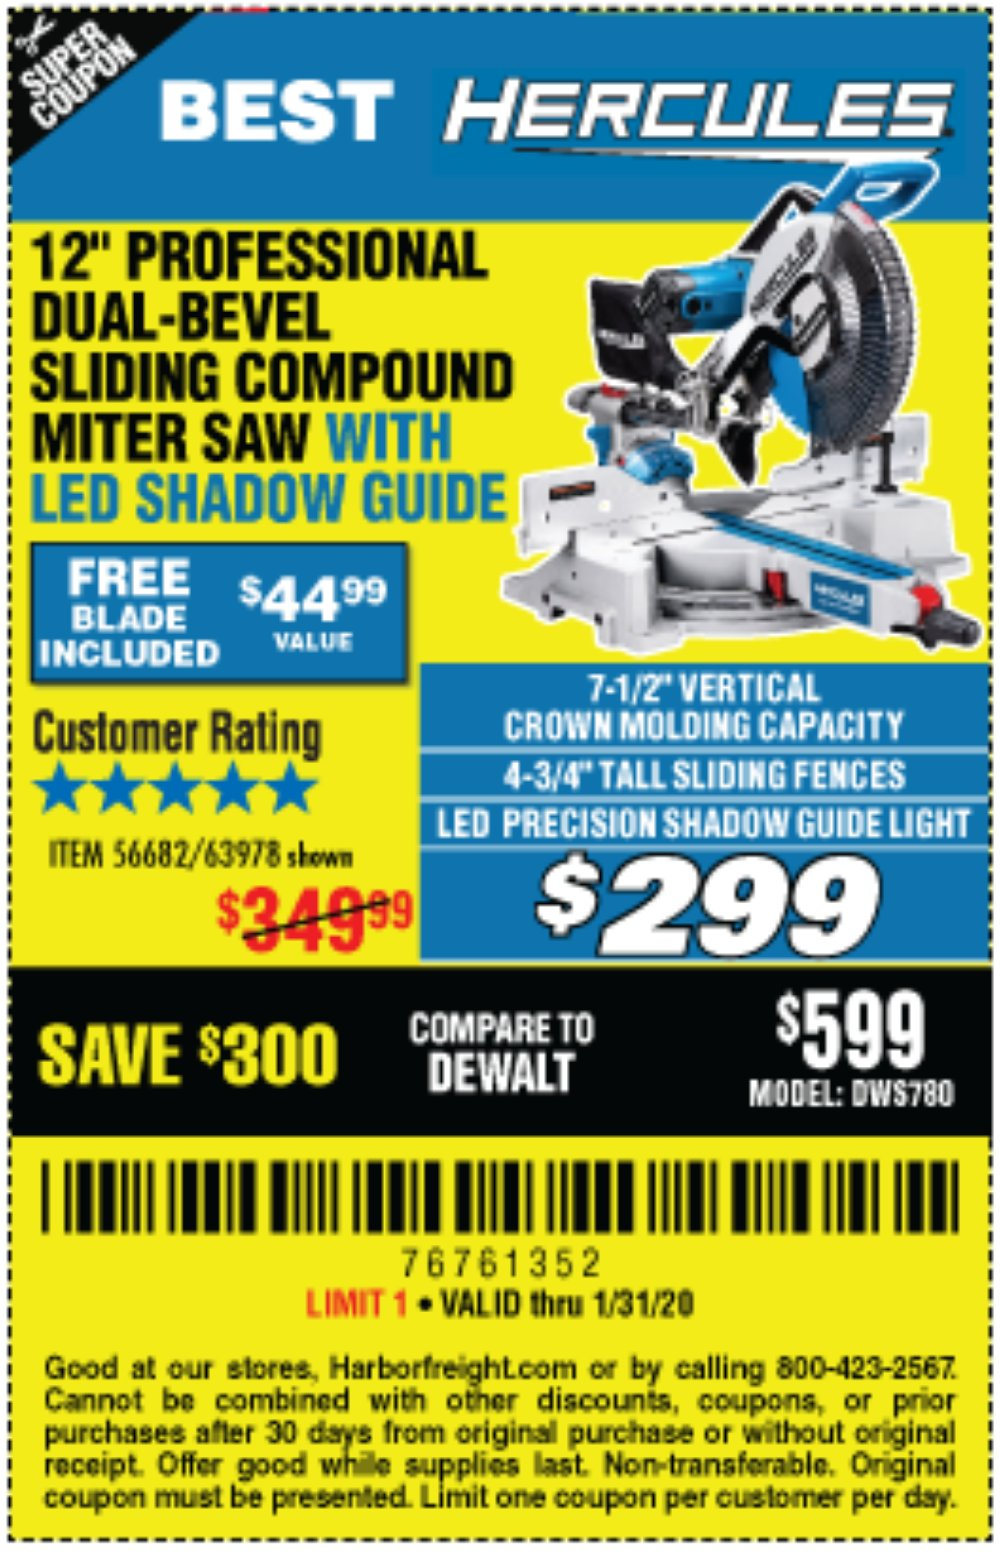 Harbor Freight Coupon, HF Coupons - Hercules Professional 12